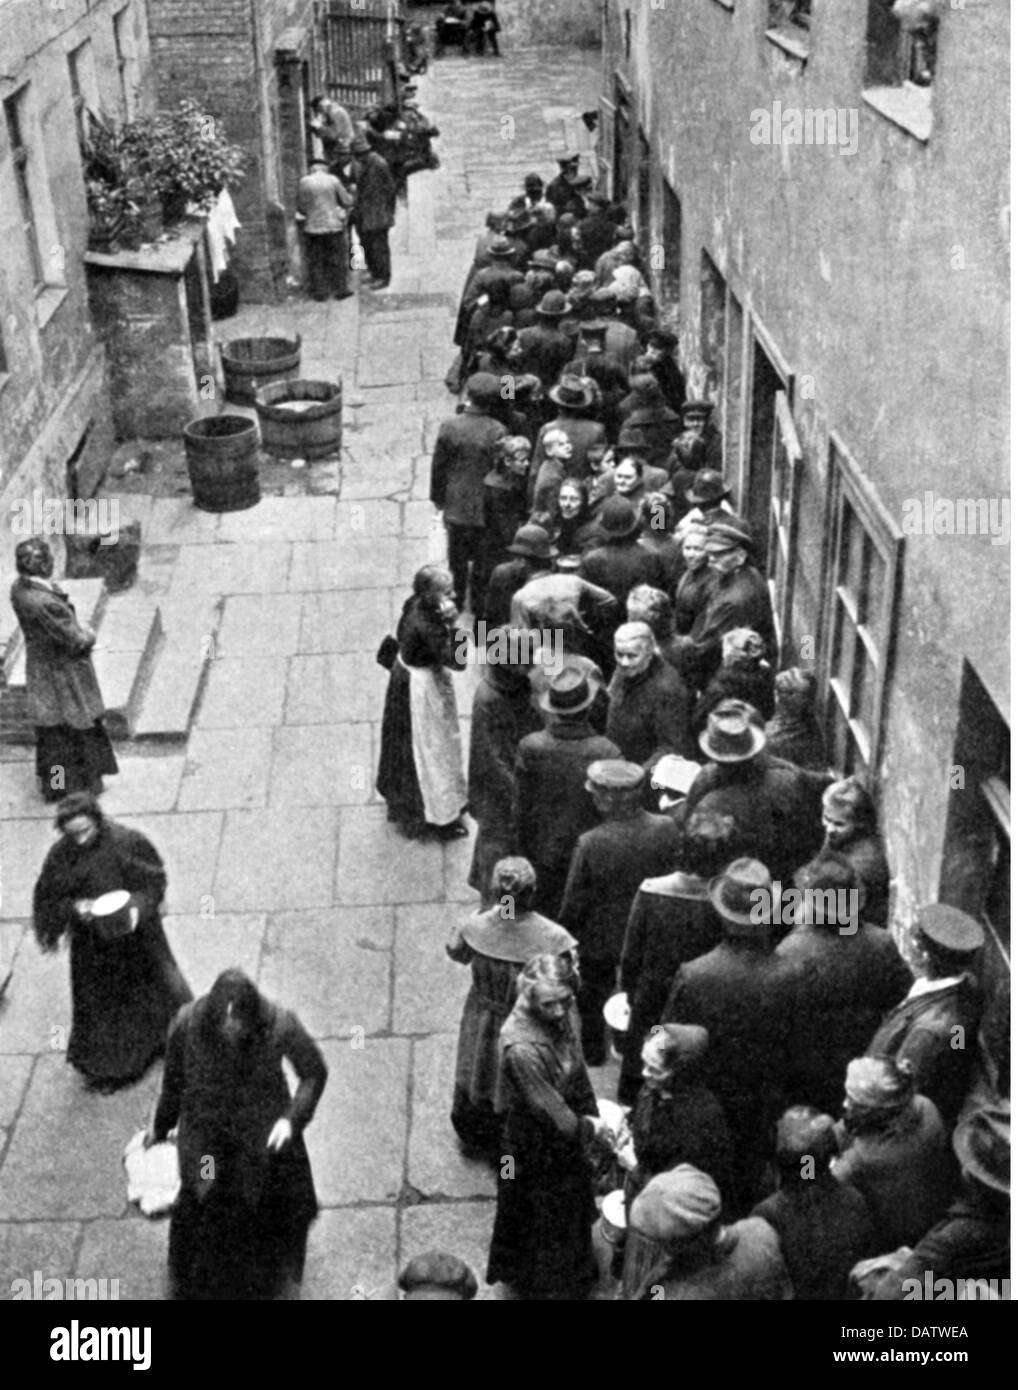 people, misery, waiting line at a soup kitchen in a Berlin backyard during the hyperinflation, 1923, Additional - Stock Image